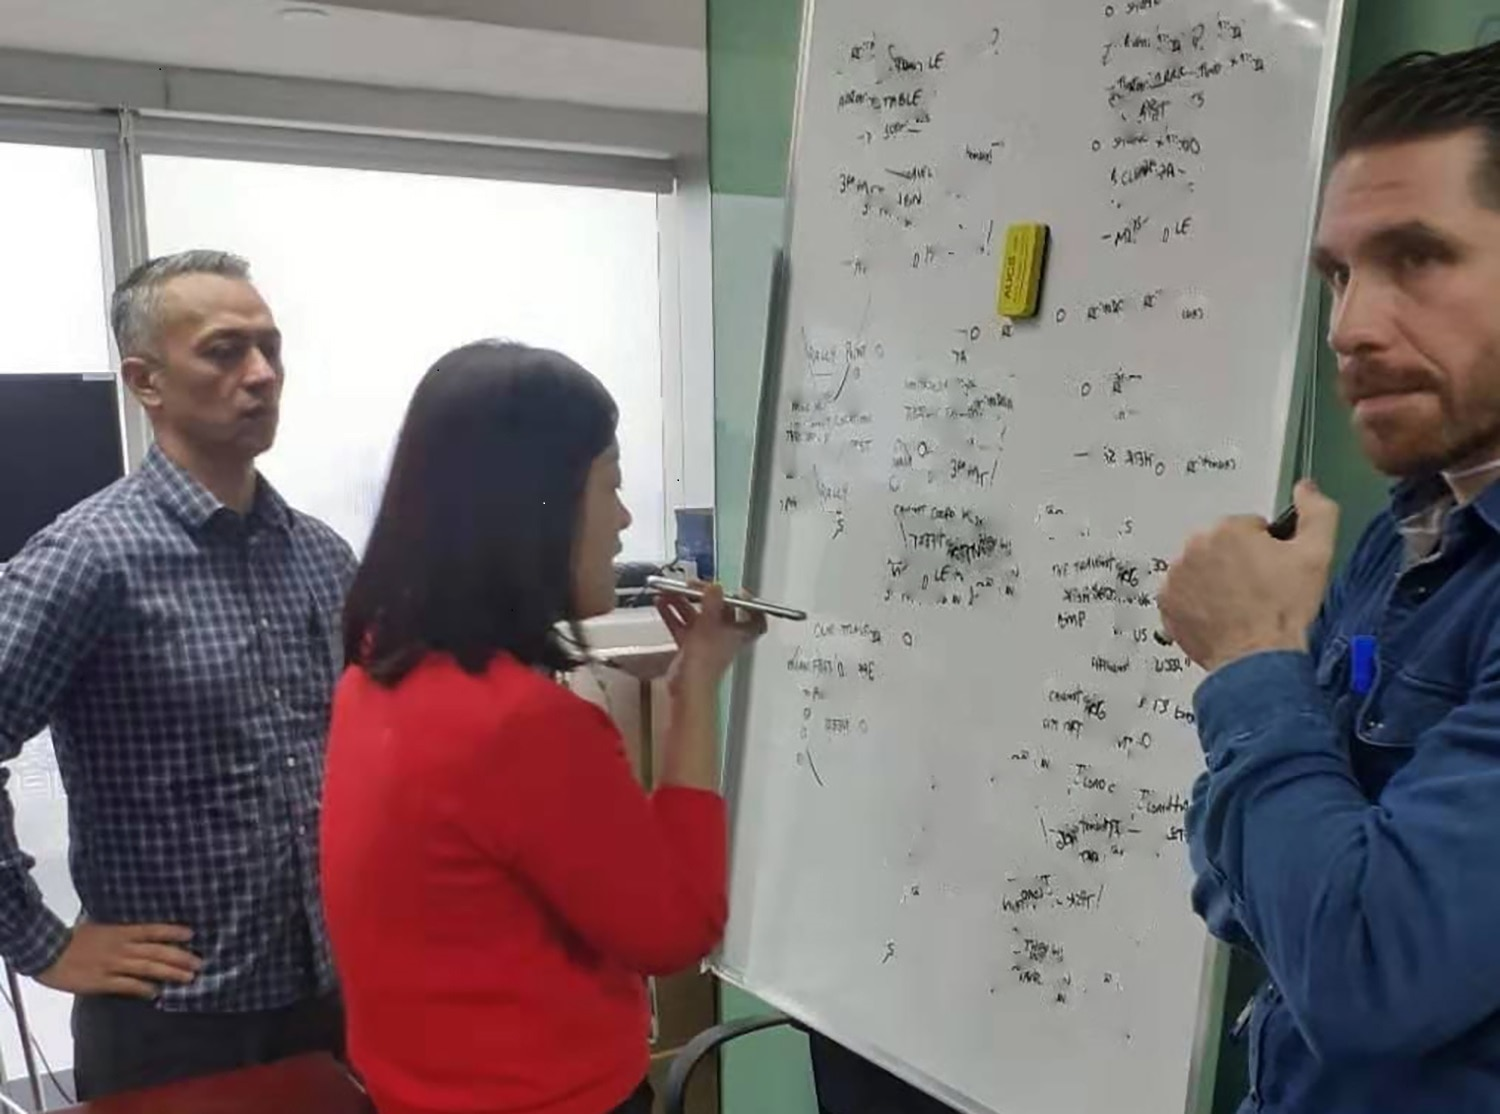 The DSS Regional Security Office team implements the U.S.Consulate evacuation plan, Wuhan, China, Jan. 27, 2020.(U.S. Department of State photo)